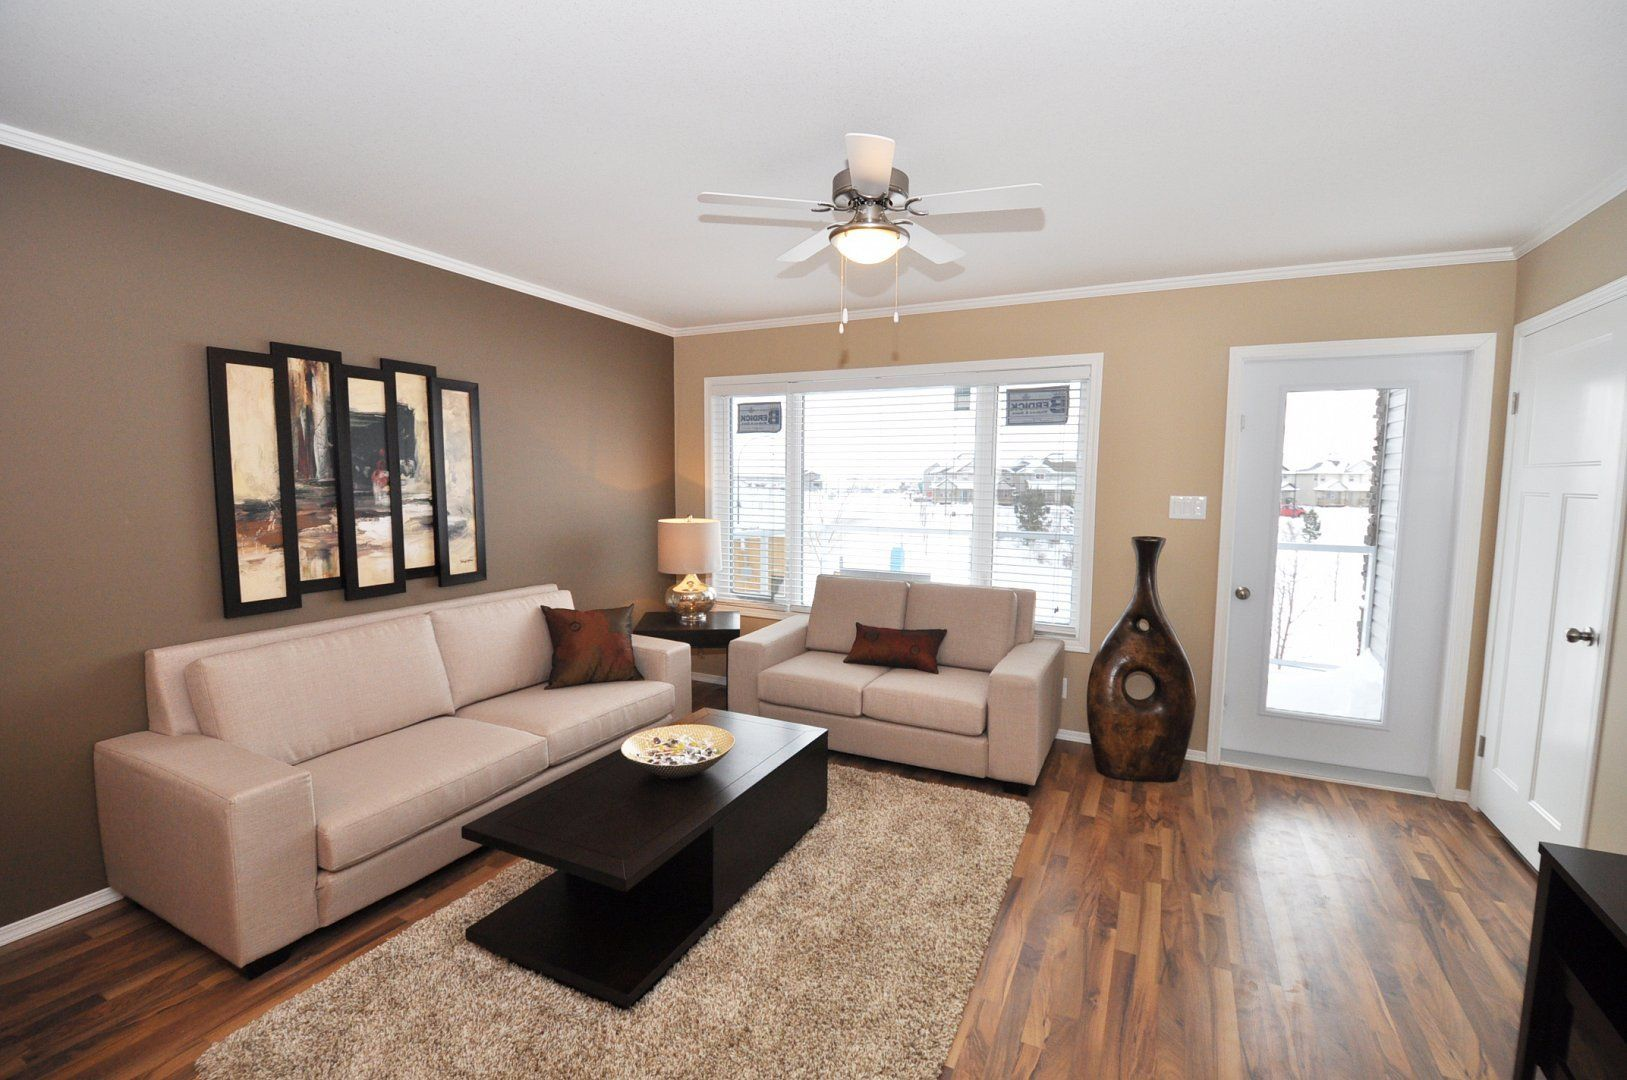 Small Townhouse Living Room Ideas Decorating A Small Townhouse